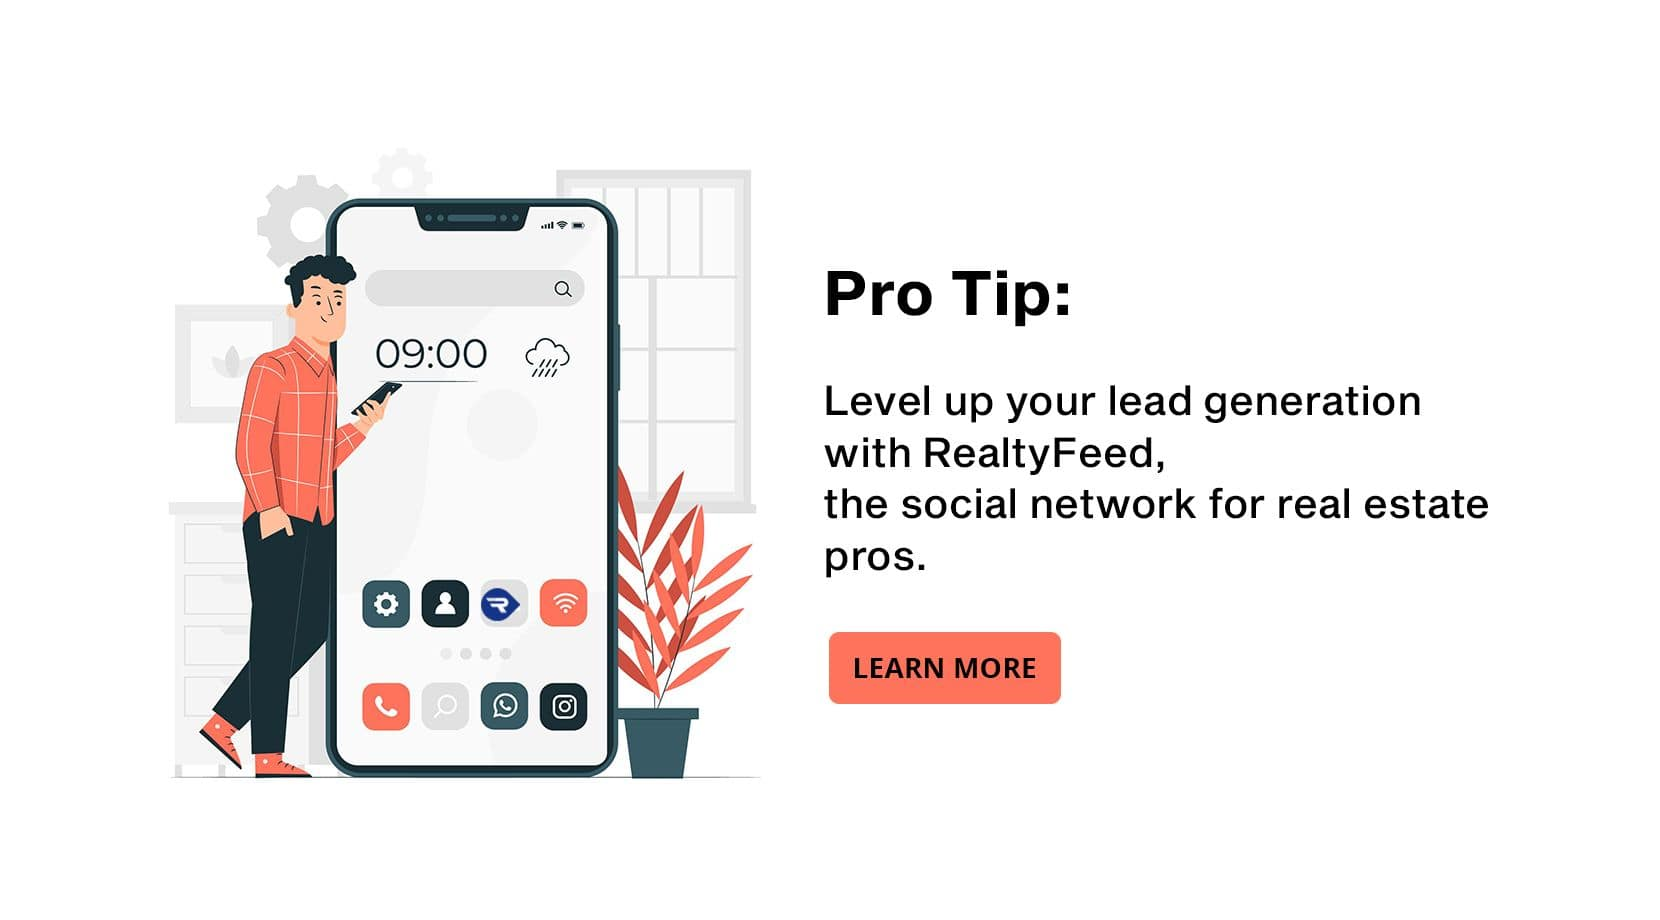 Level up your lead generation with RealtyFeed, the social network for real estate pros